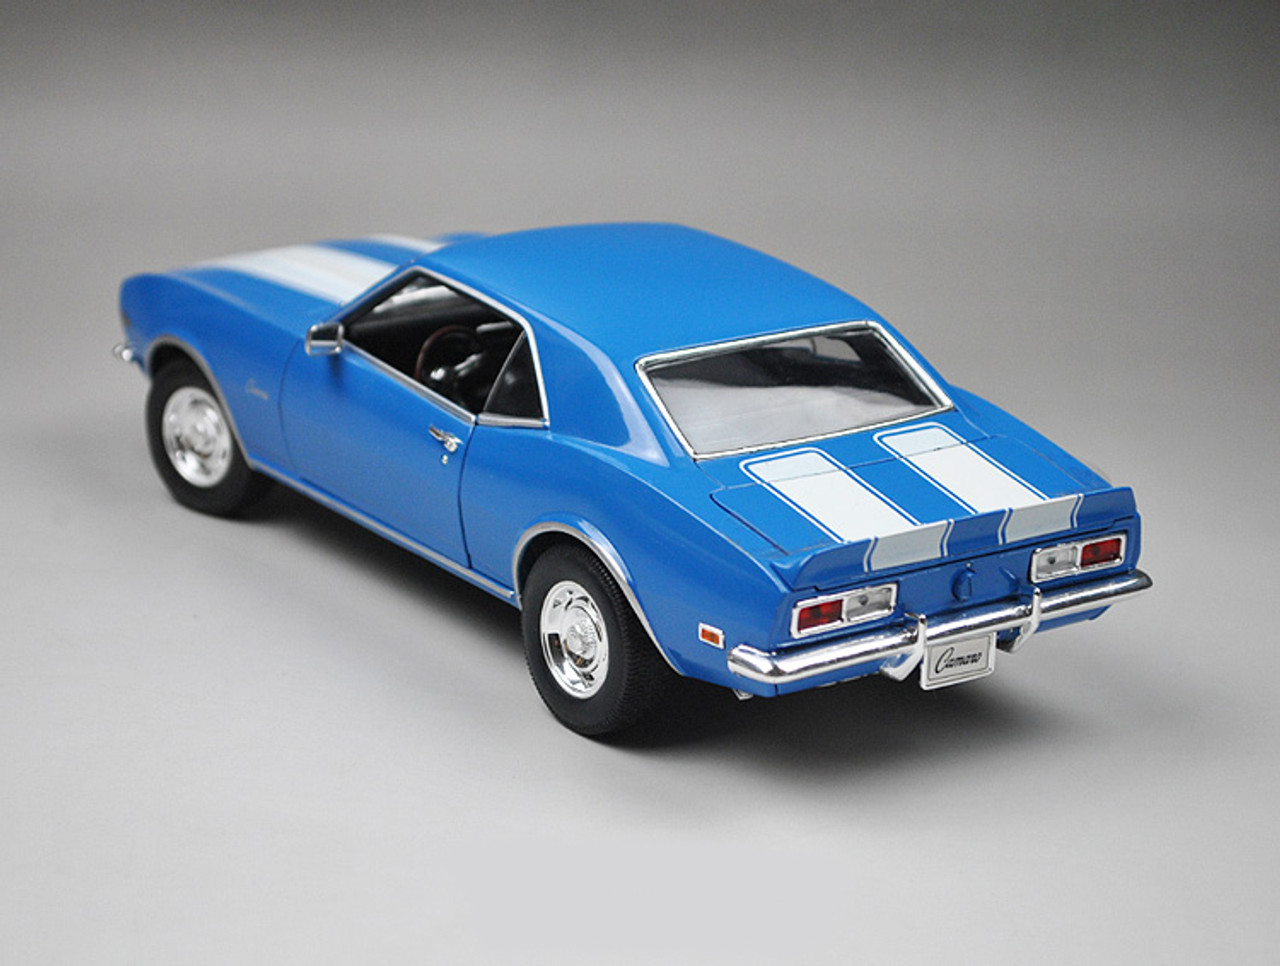 Chevrolet Chevy Camaro Z28 Coupe Blau 1968 1 Generation ca 1//43 1//36-1//46 Welly